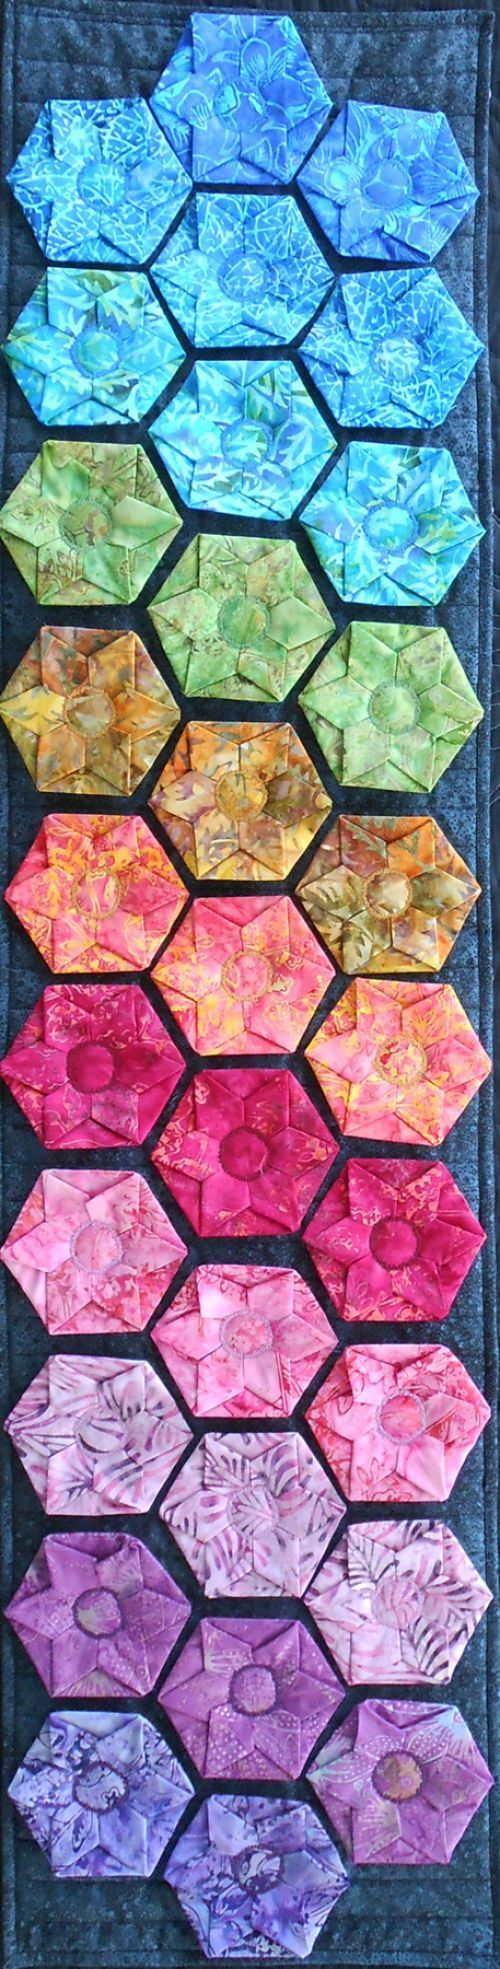 Hexi Flower Fun quilt by Erin Underwood